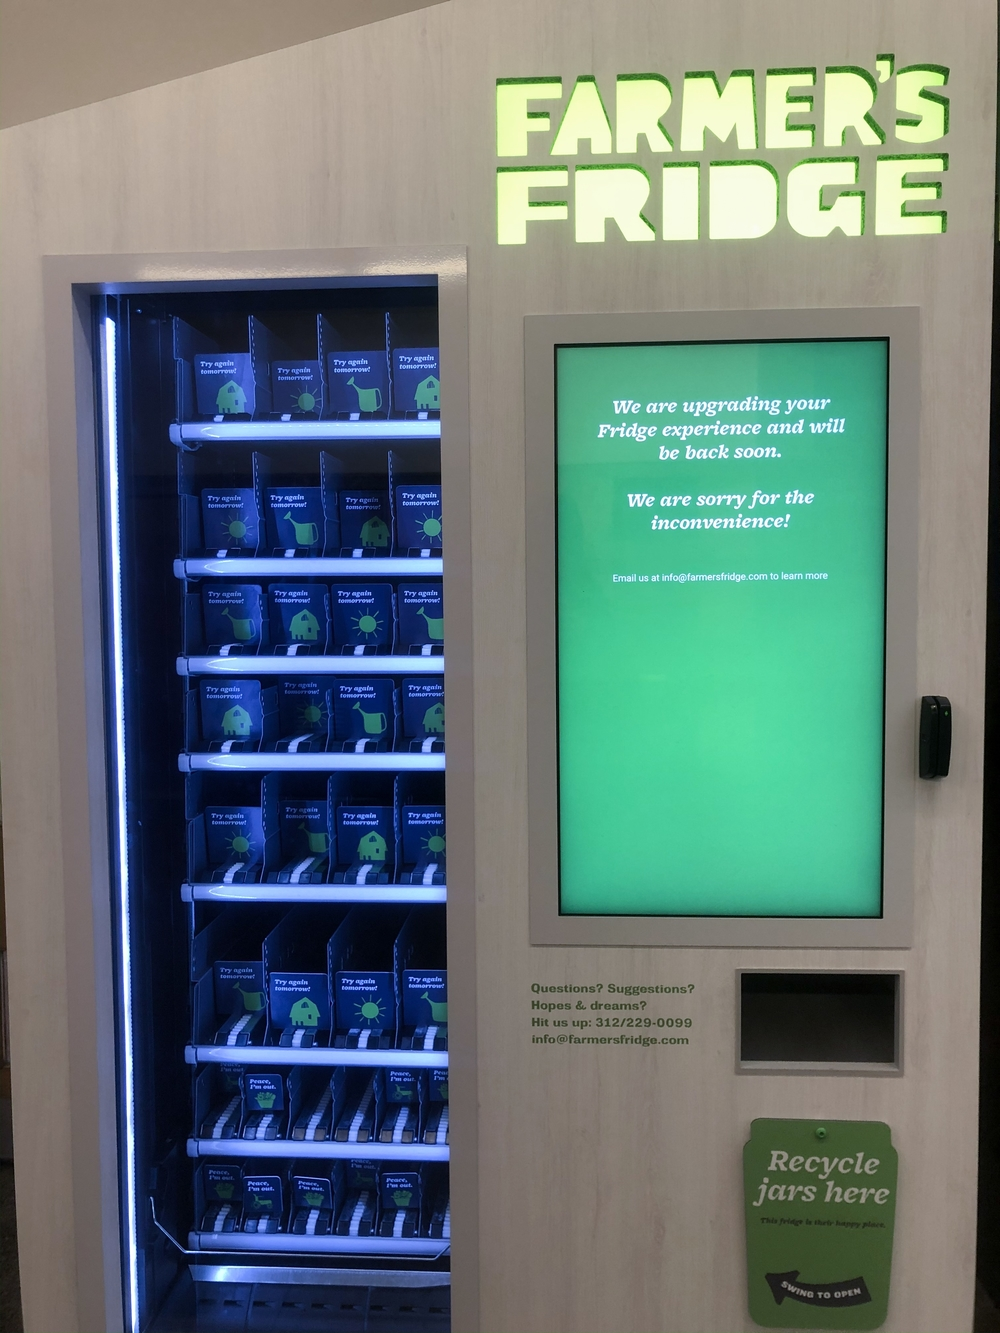 An empty Farmer's Fridge in the Brookdale dorm with a sign that says the company is upgrading the fridge.